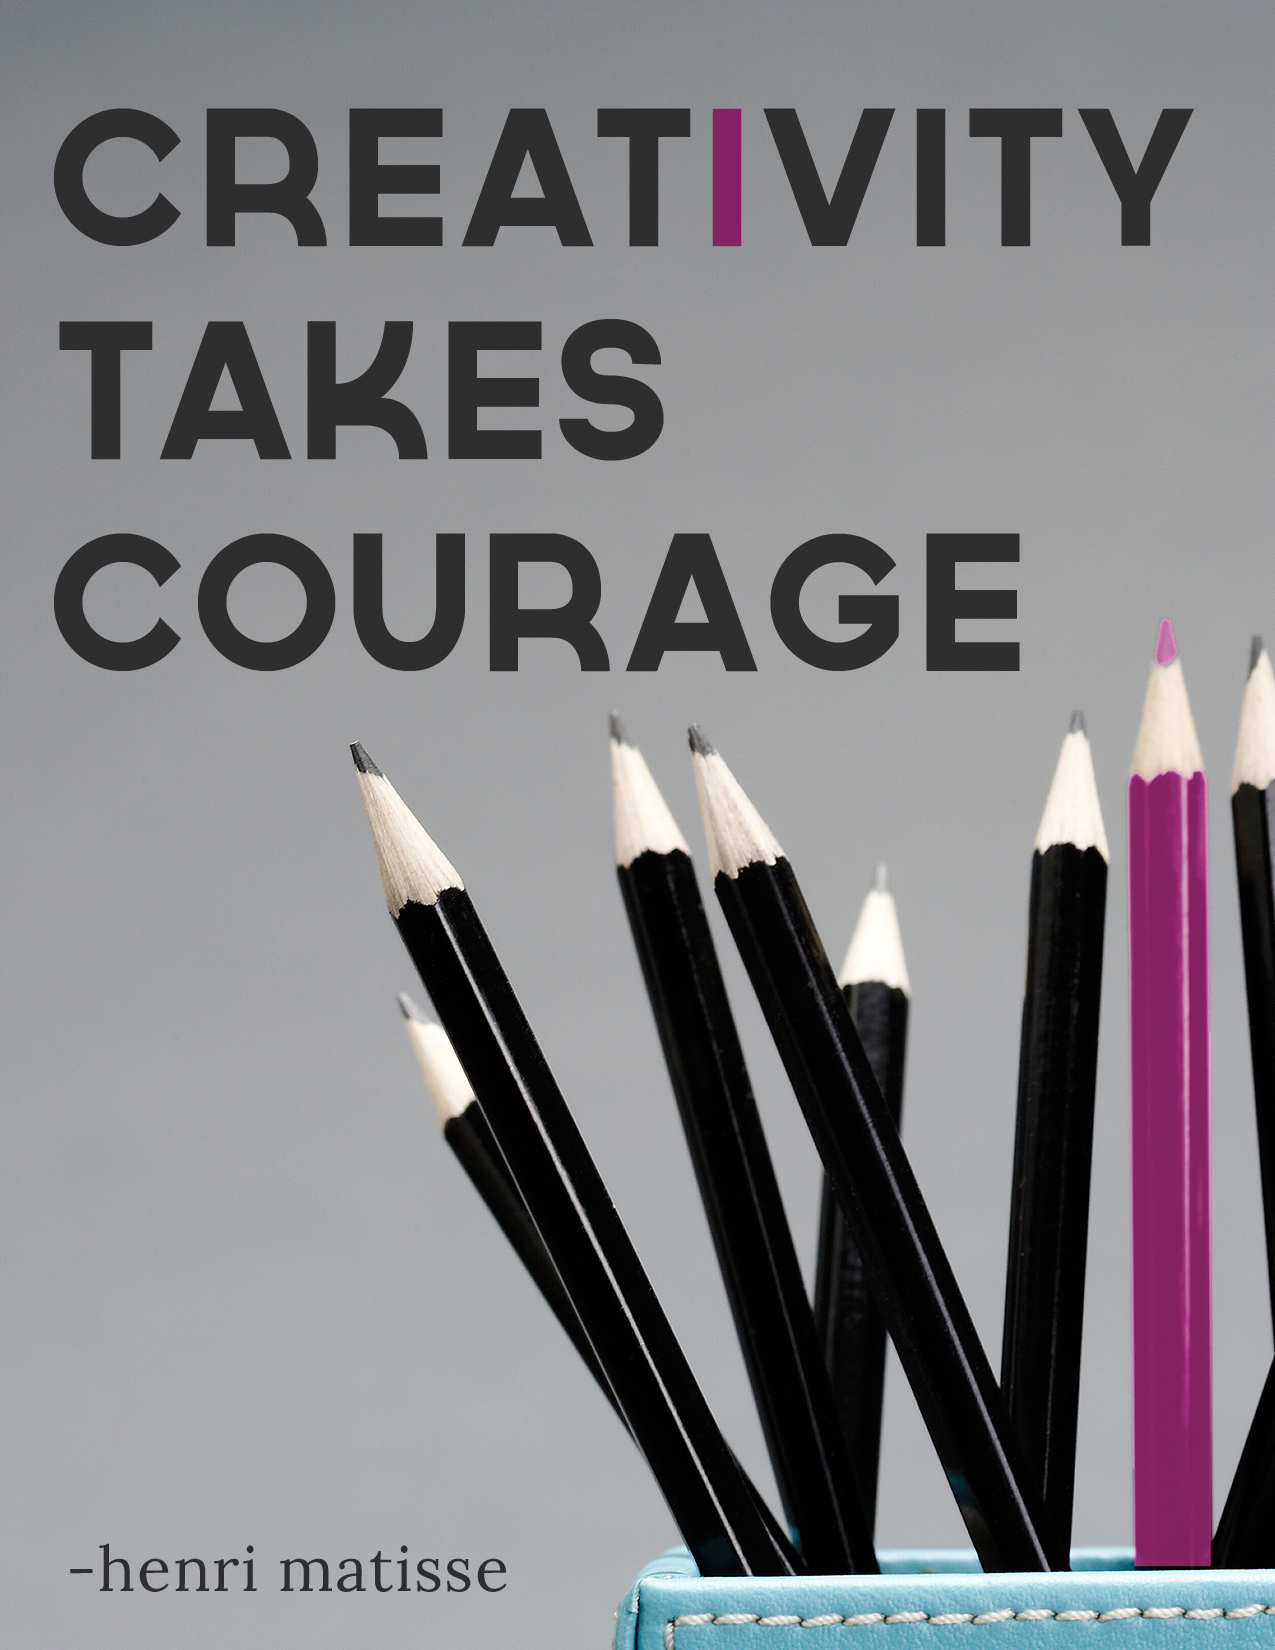 Creating quote #7